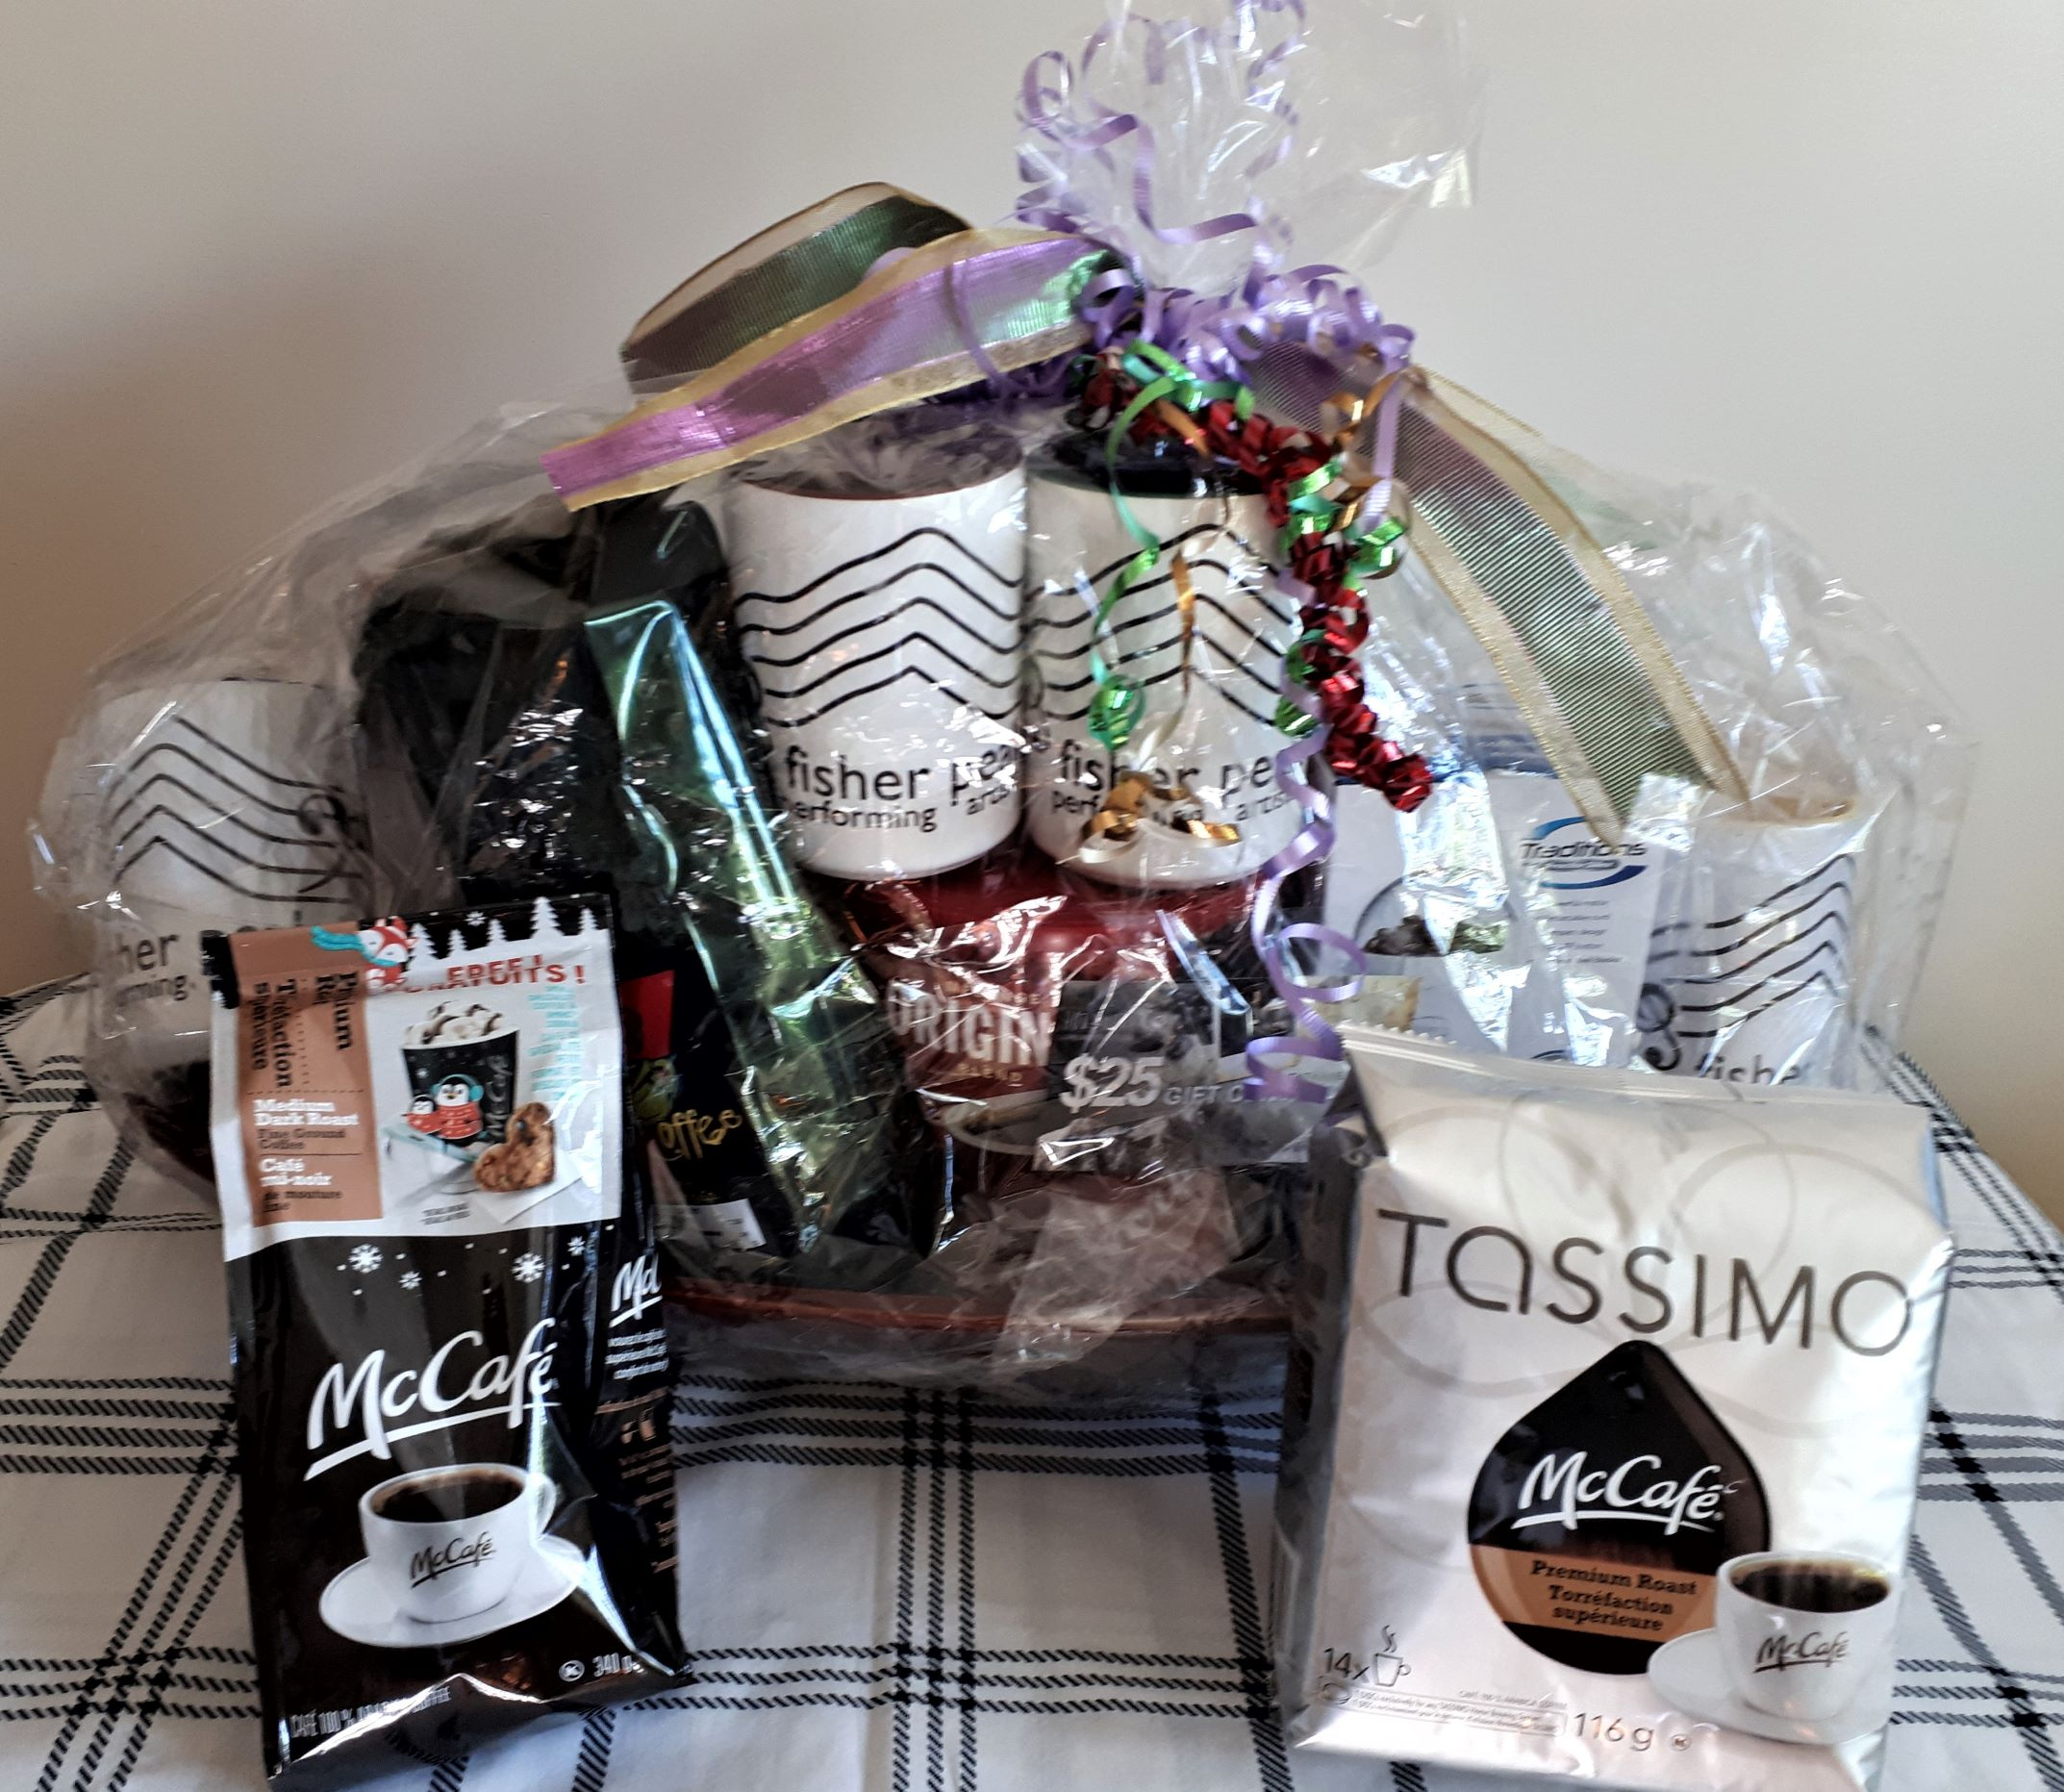 2nd Prize contains: 4 custom mugs from Cranbrook Photo, Coffee from Tim Hortons and Kootenay Roasting Company, coffee grinder and press from Canadian Tire, 25$ Gift Certificate from Hot Shots, coffee + coffee pods + coffee coupons from McDonalds.